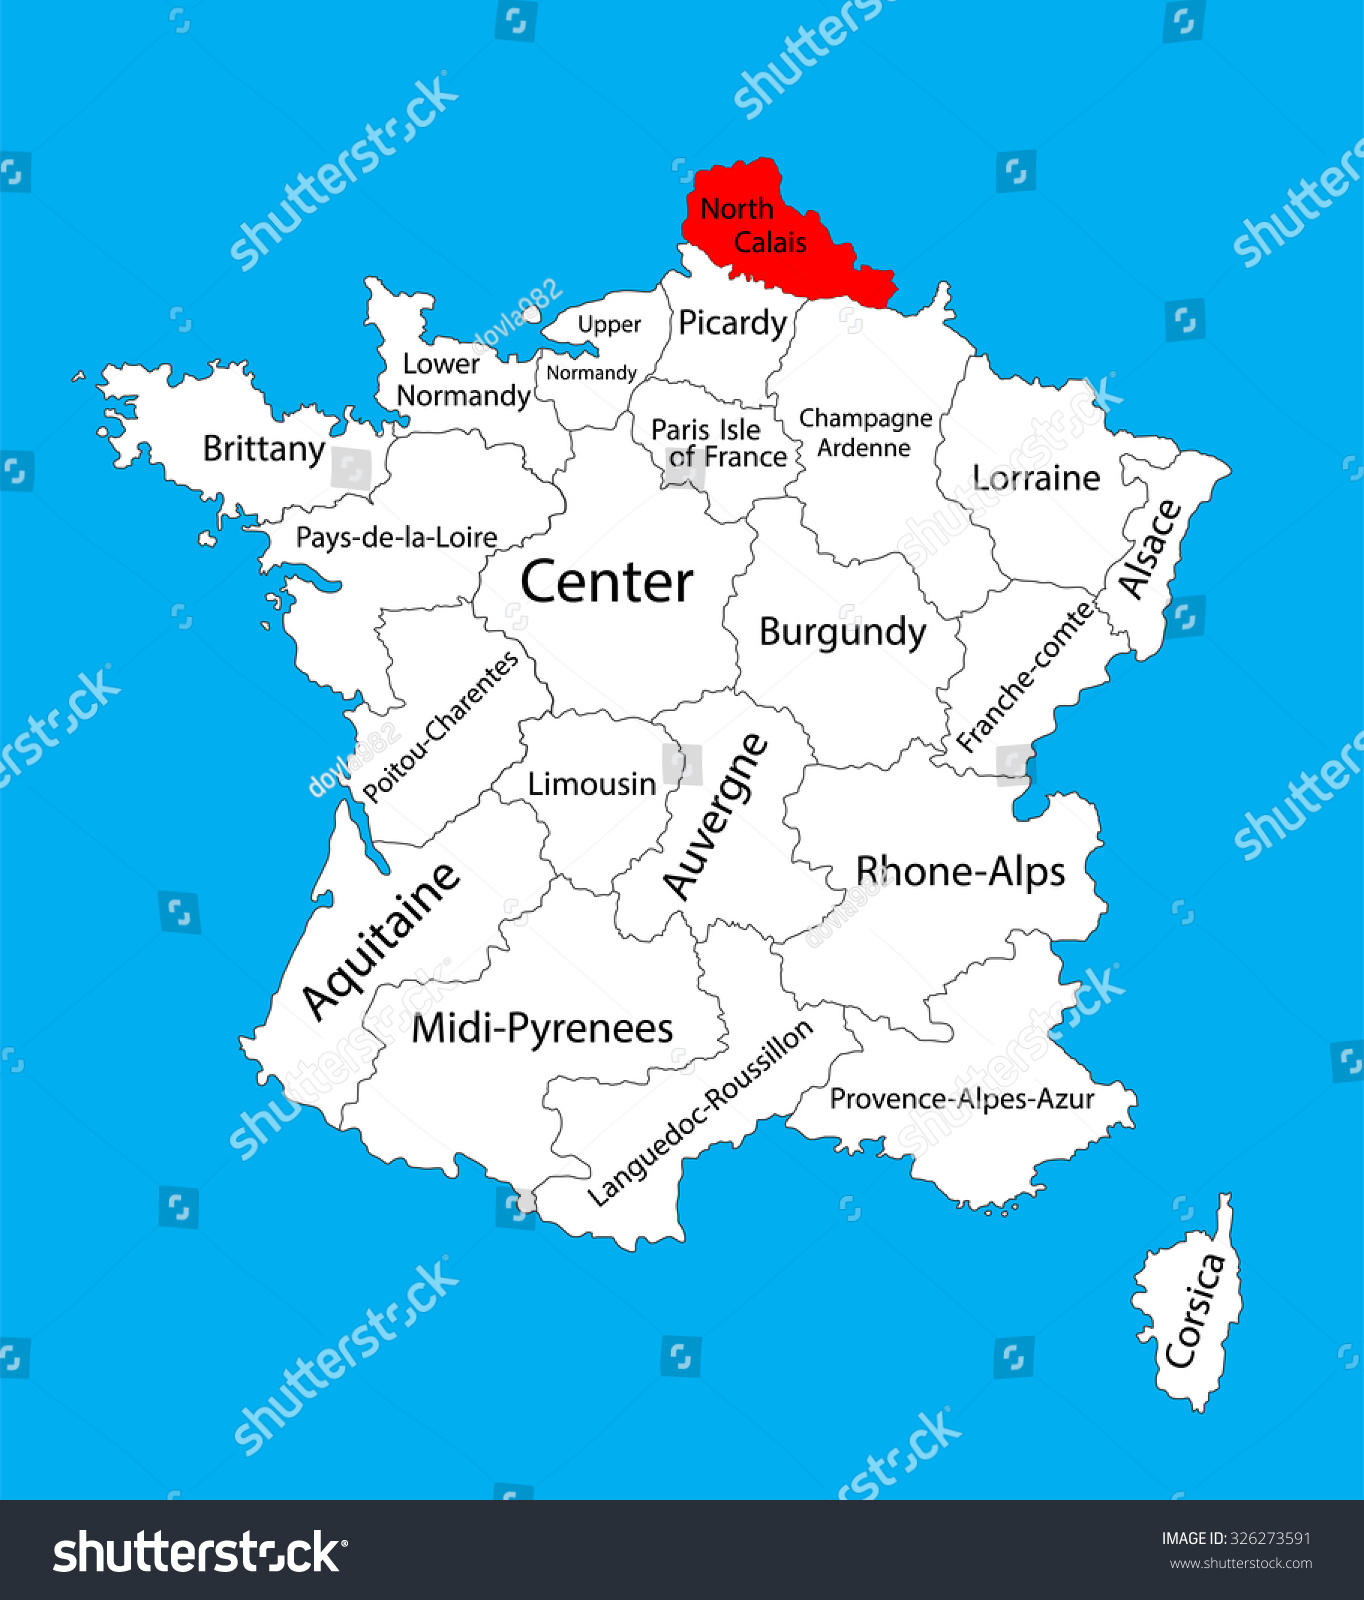 Vector map nordpasdecalais france region france stock - Tables decennales pas de calais ...